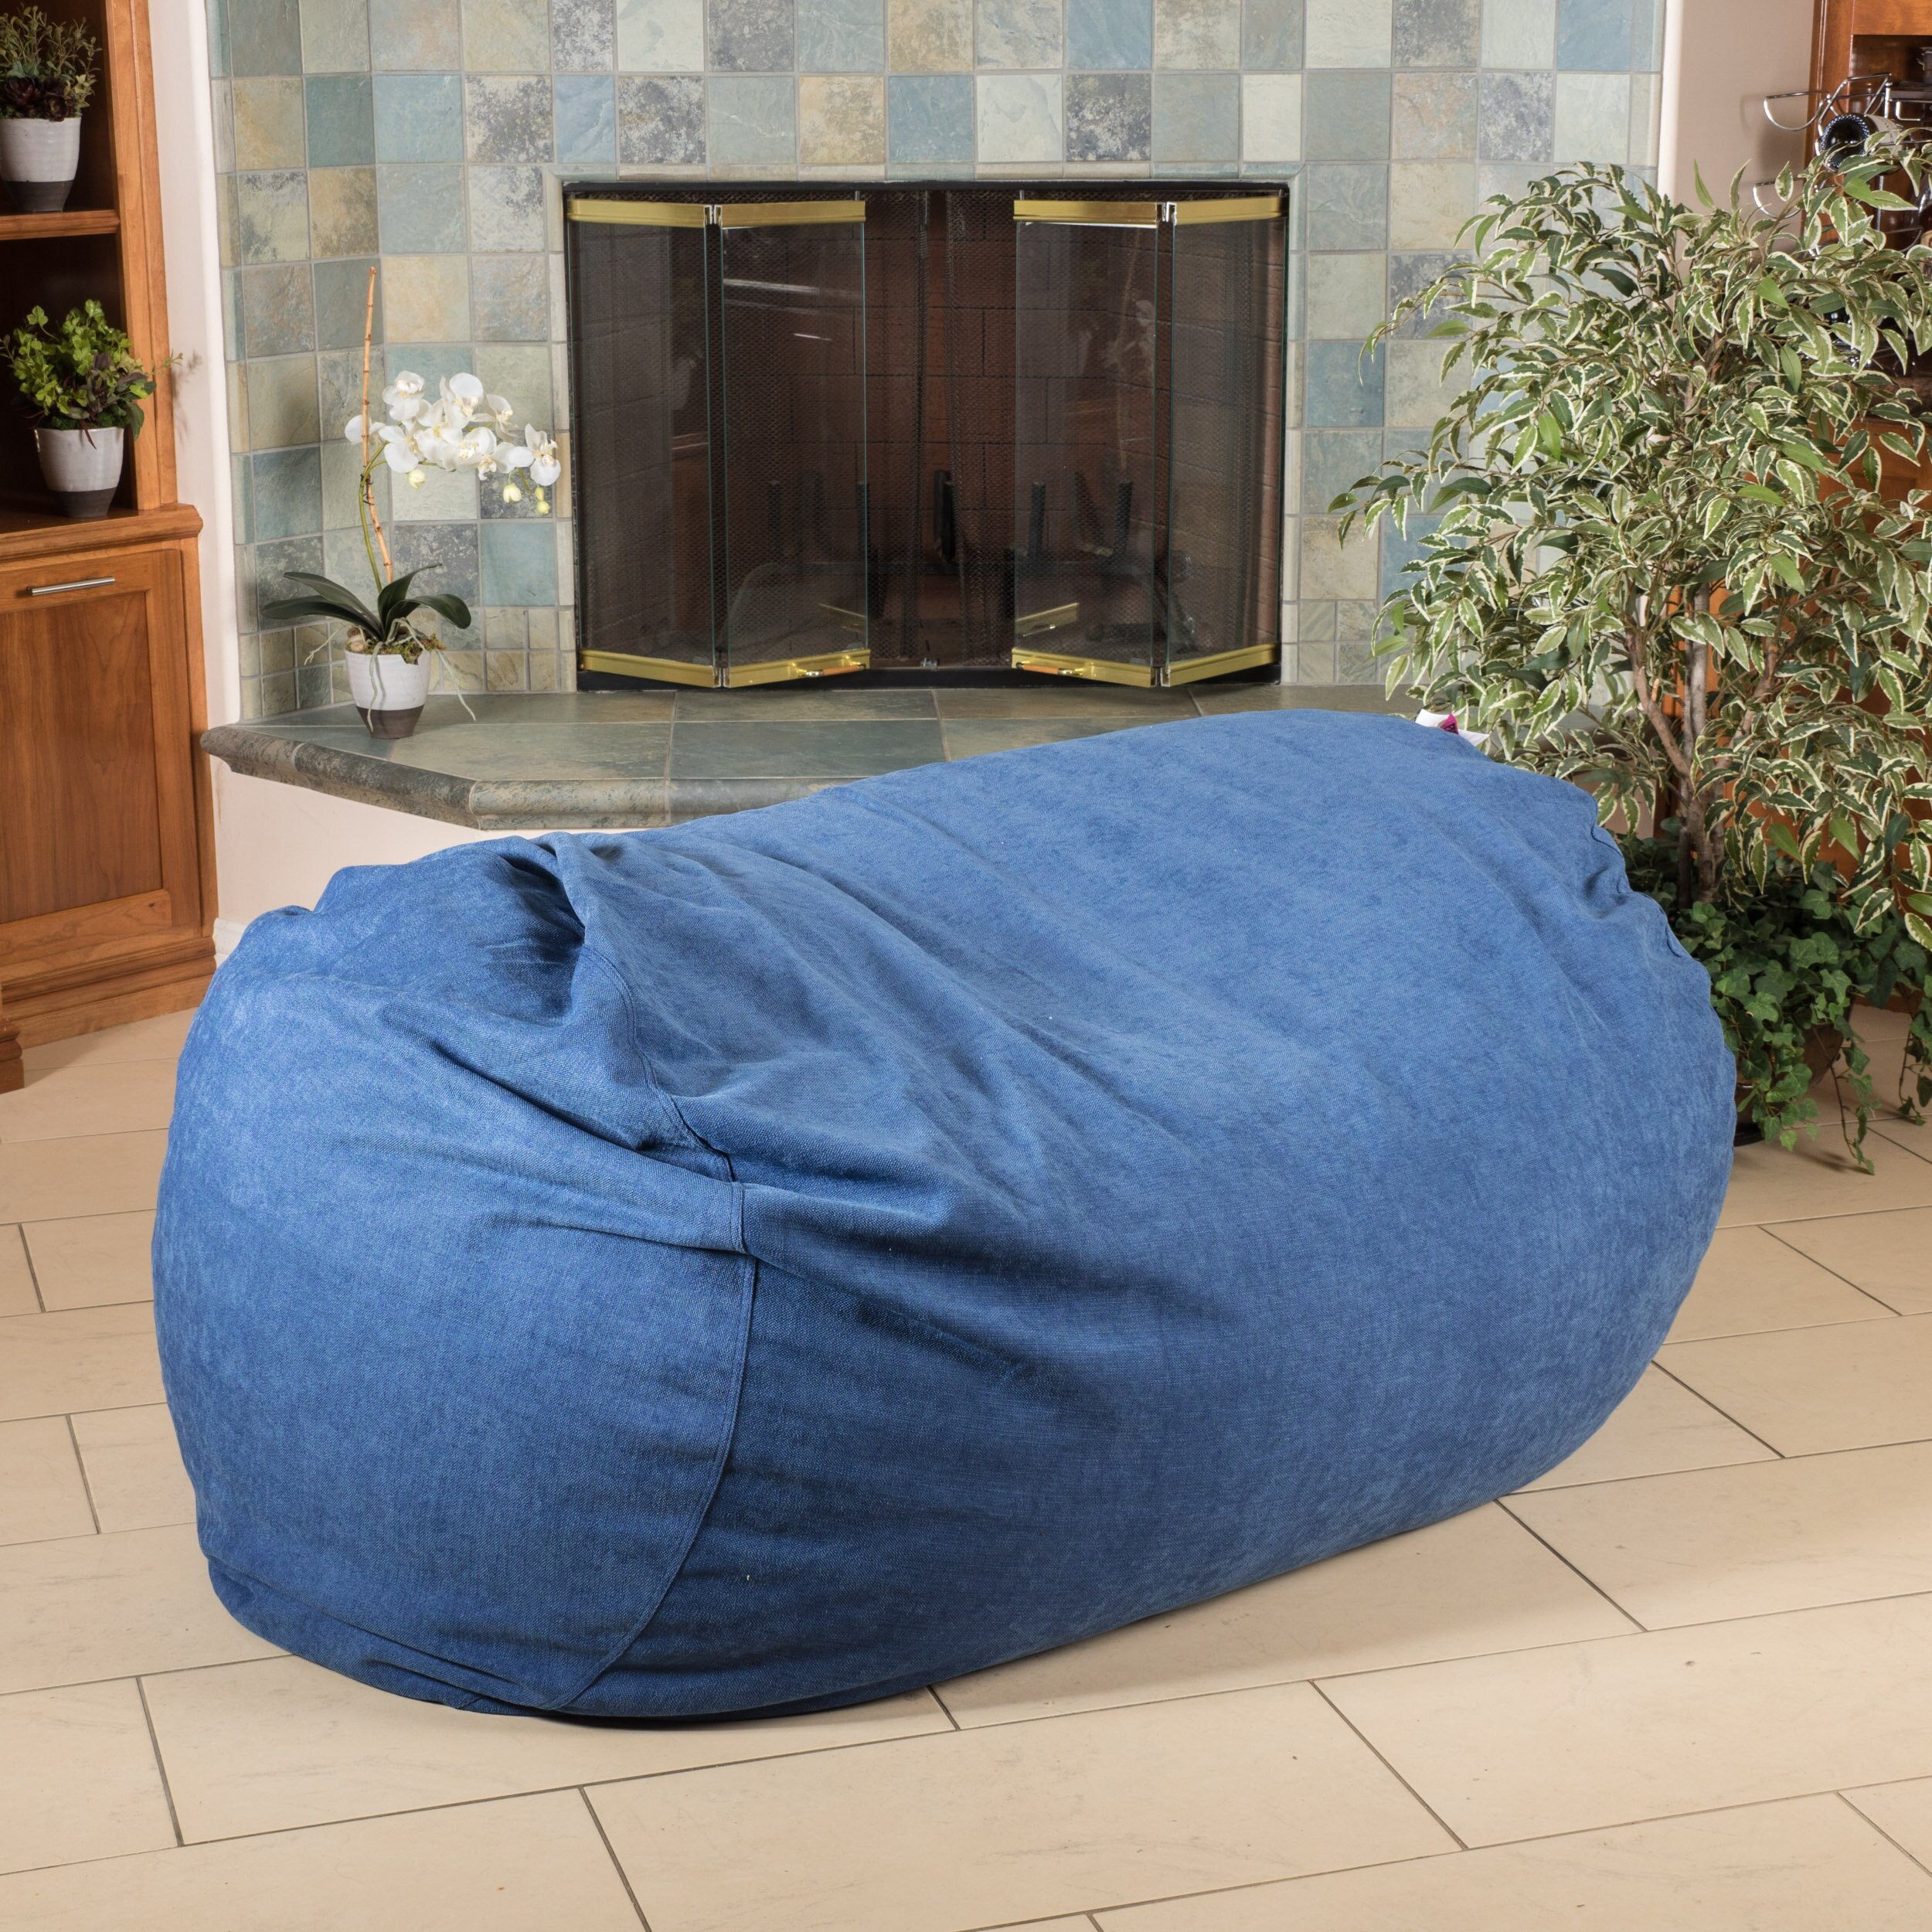 Symple Stuff Bean Bag Sofa Wayfair